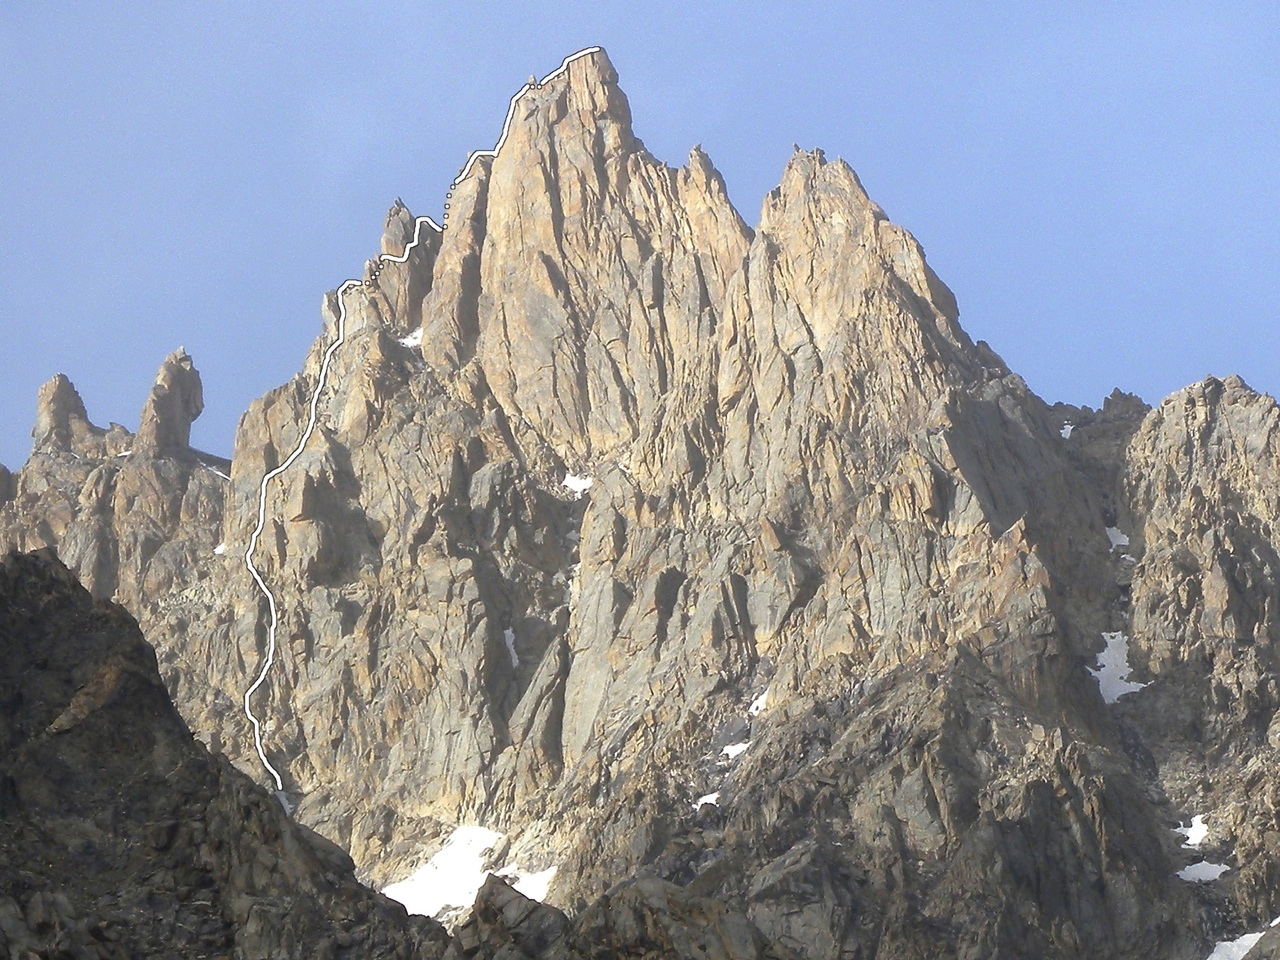 Church-Flemming-Weidner route on west face of Rostam.